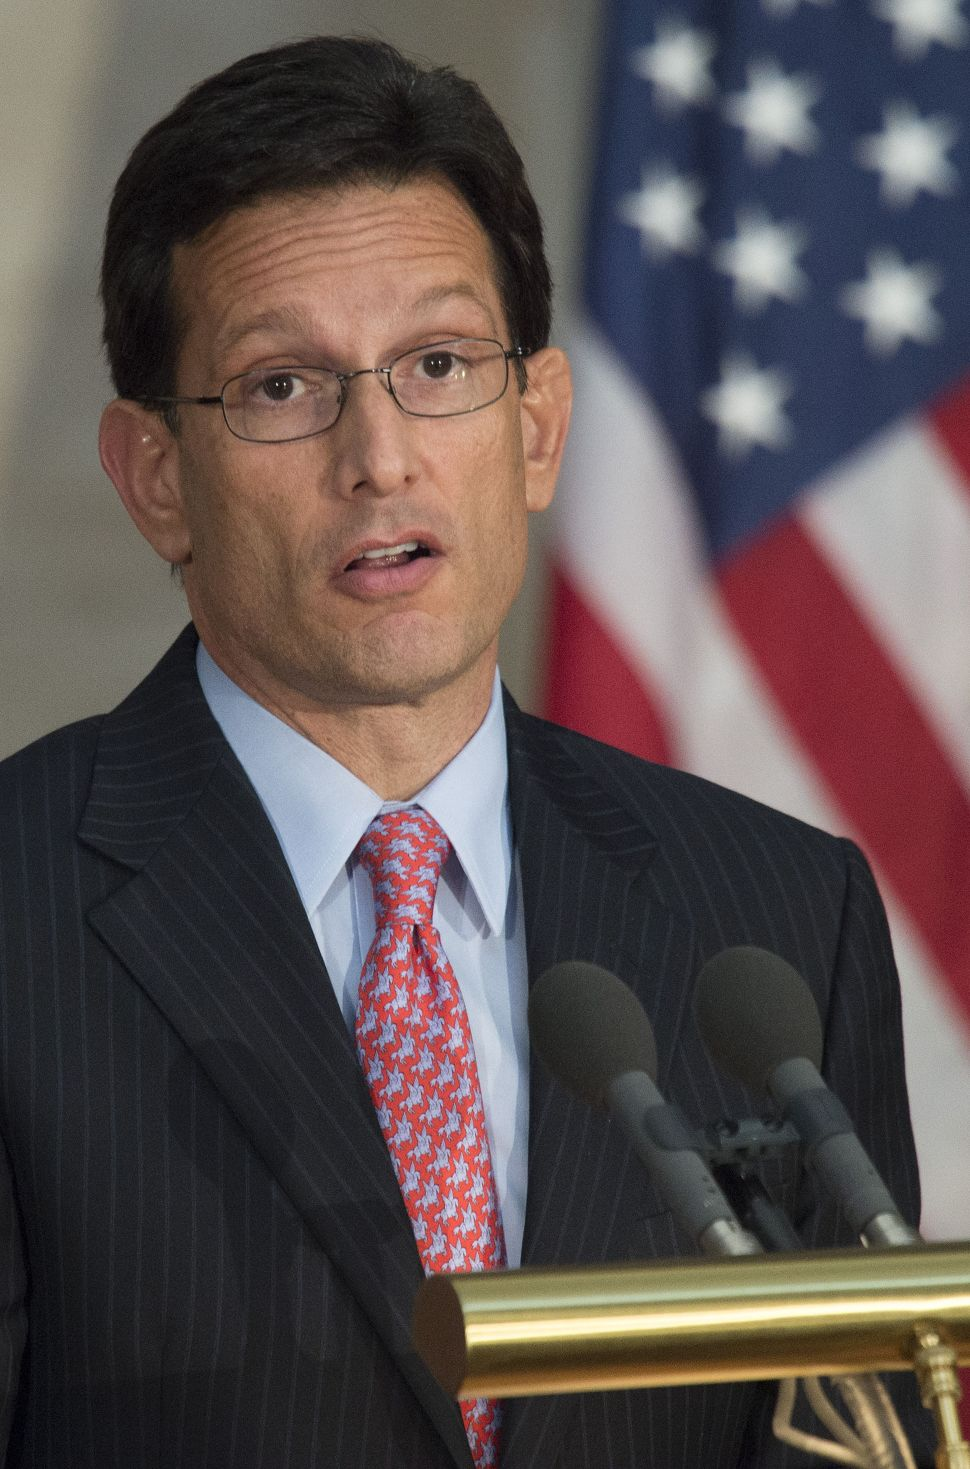 Eric Cantor Subpoenaed in Israel-China Terror Finance Suit